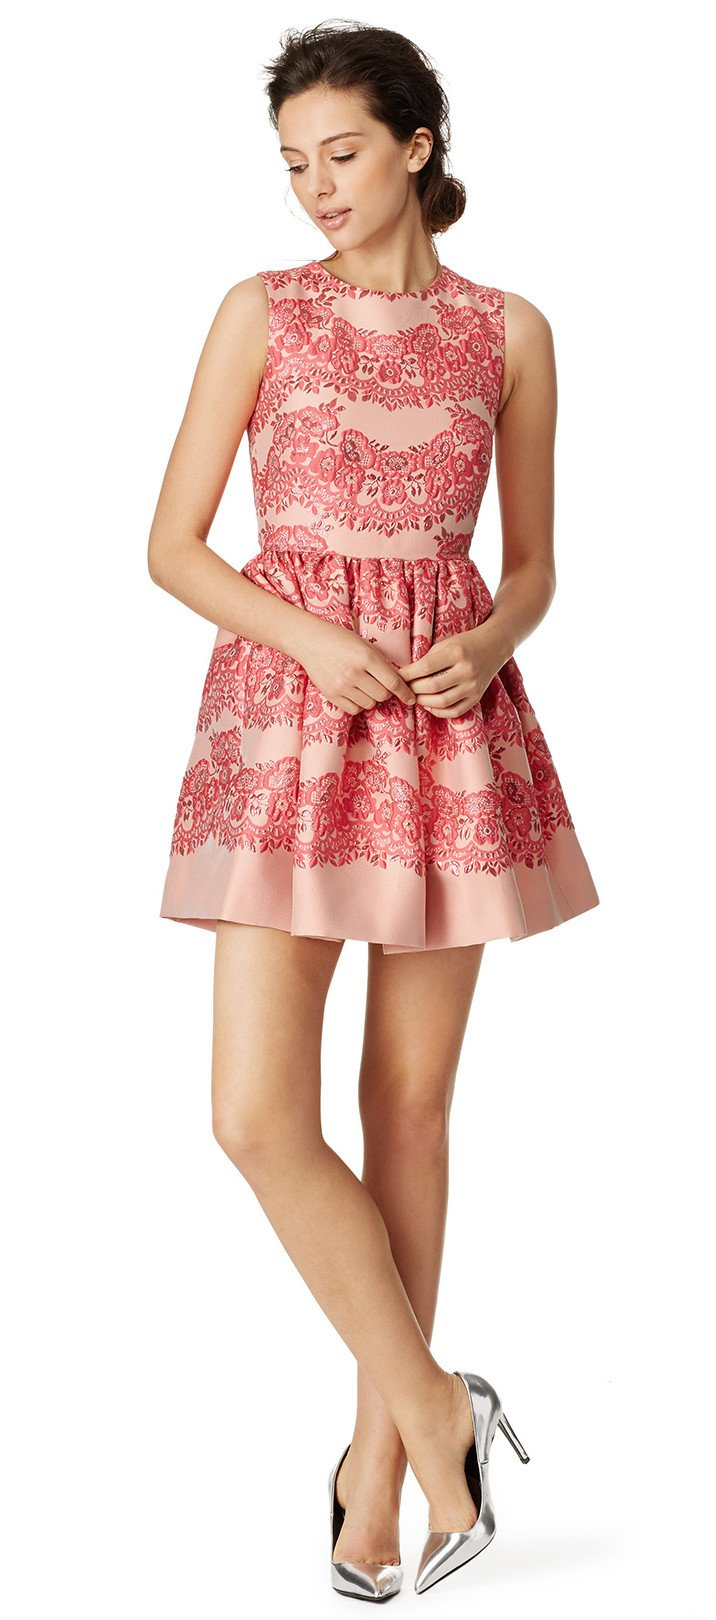 RED Valentino Lines of Pink Dress, party pretty in pink on Valentine's Day